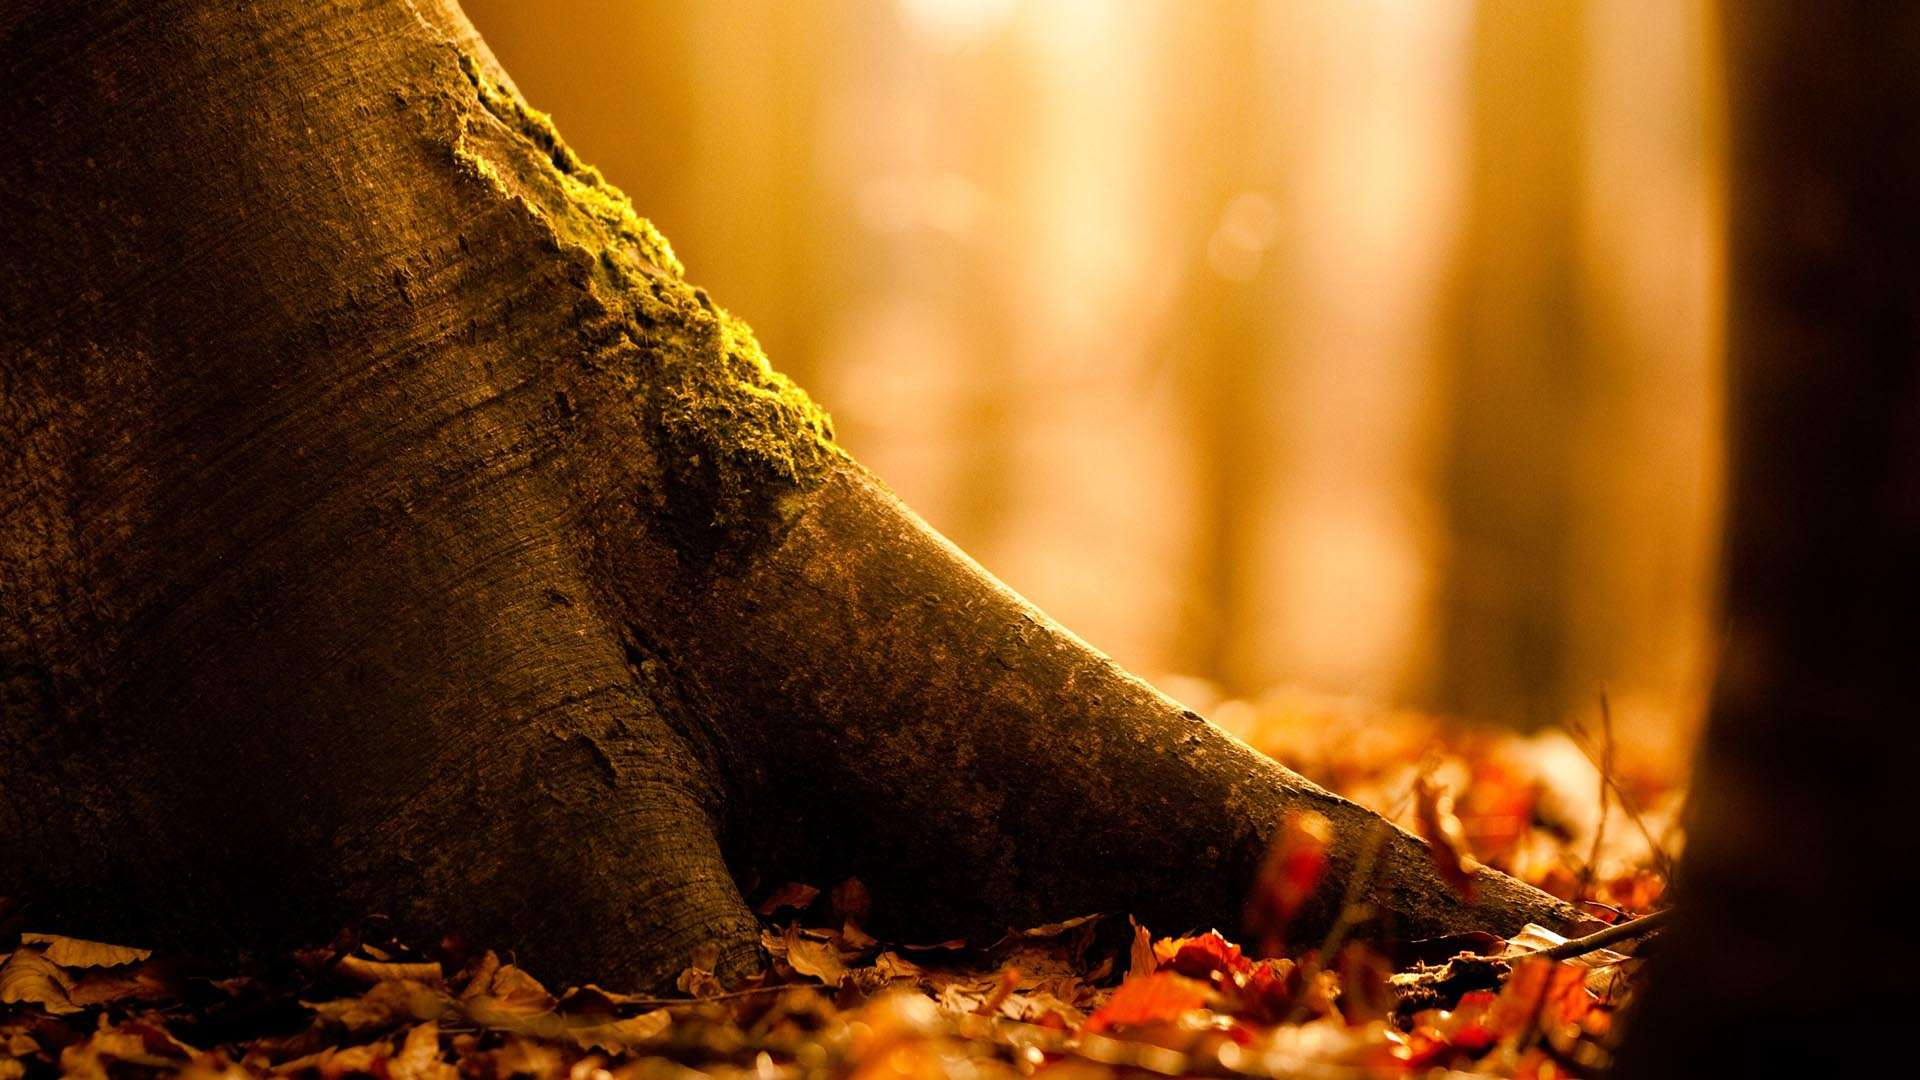 Collection of Fall Hd Wallpapers on HDWallpapers